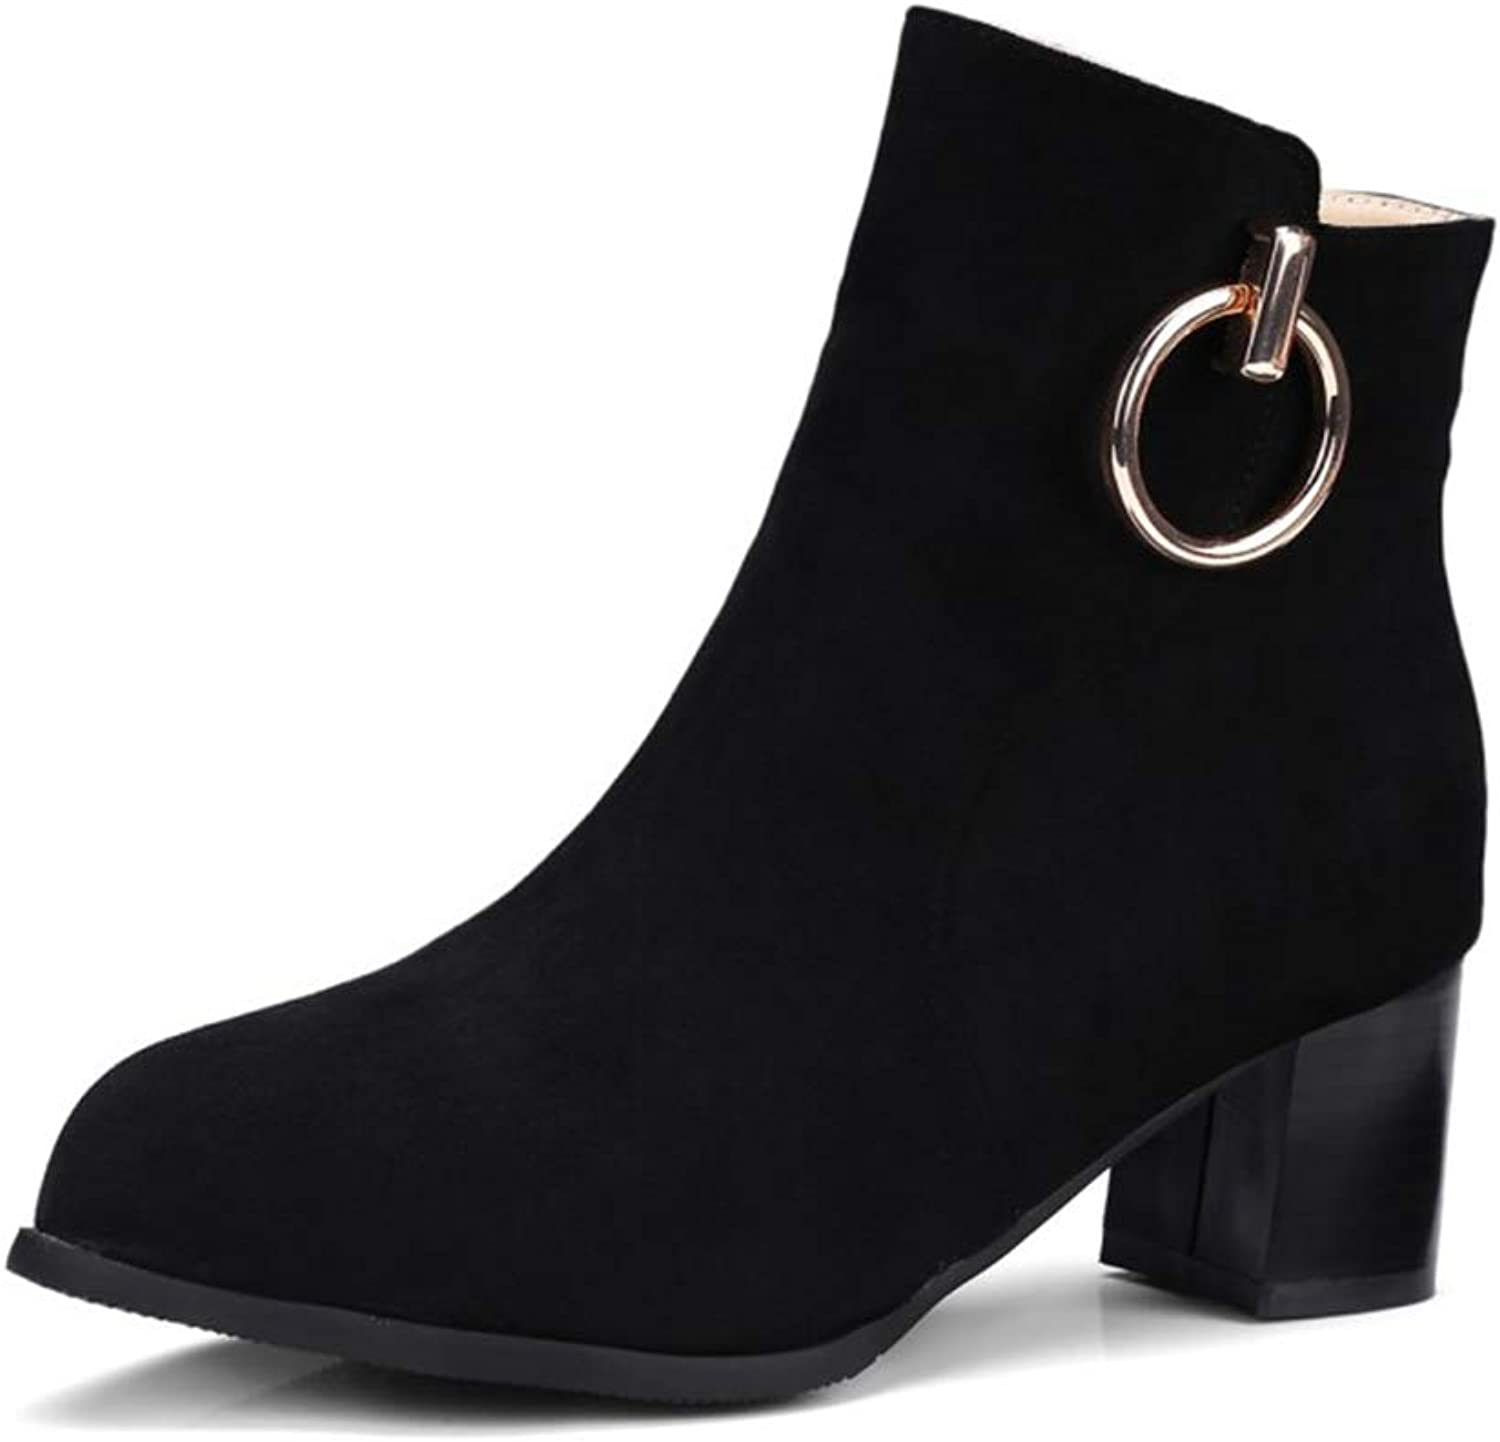 Sam Carle Women Boots, Fashion Winter Thick Heel Pointed Toe Metal Decoration Ankle Boots